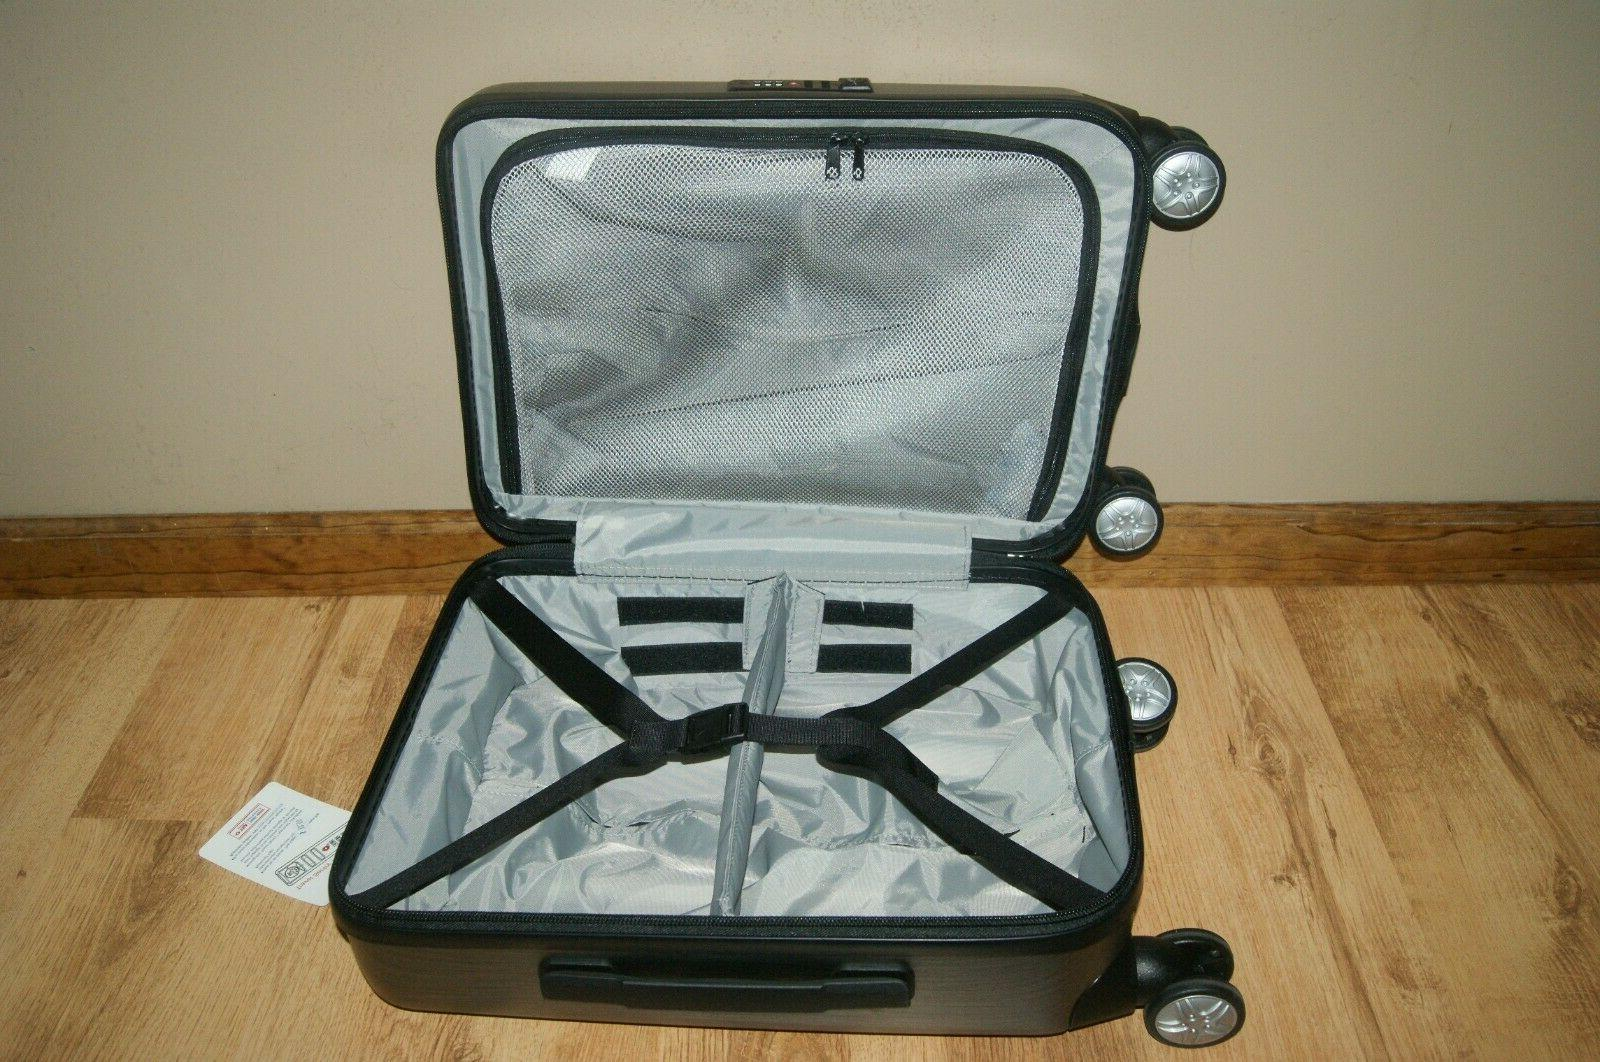 Spinner Carry-On Luggage Brushed Graphite